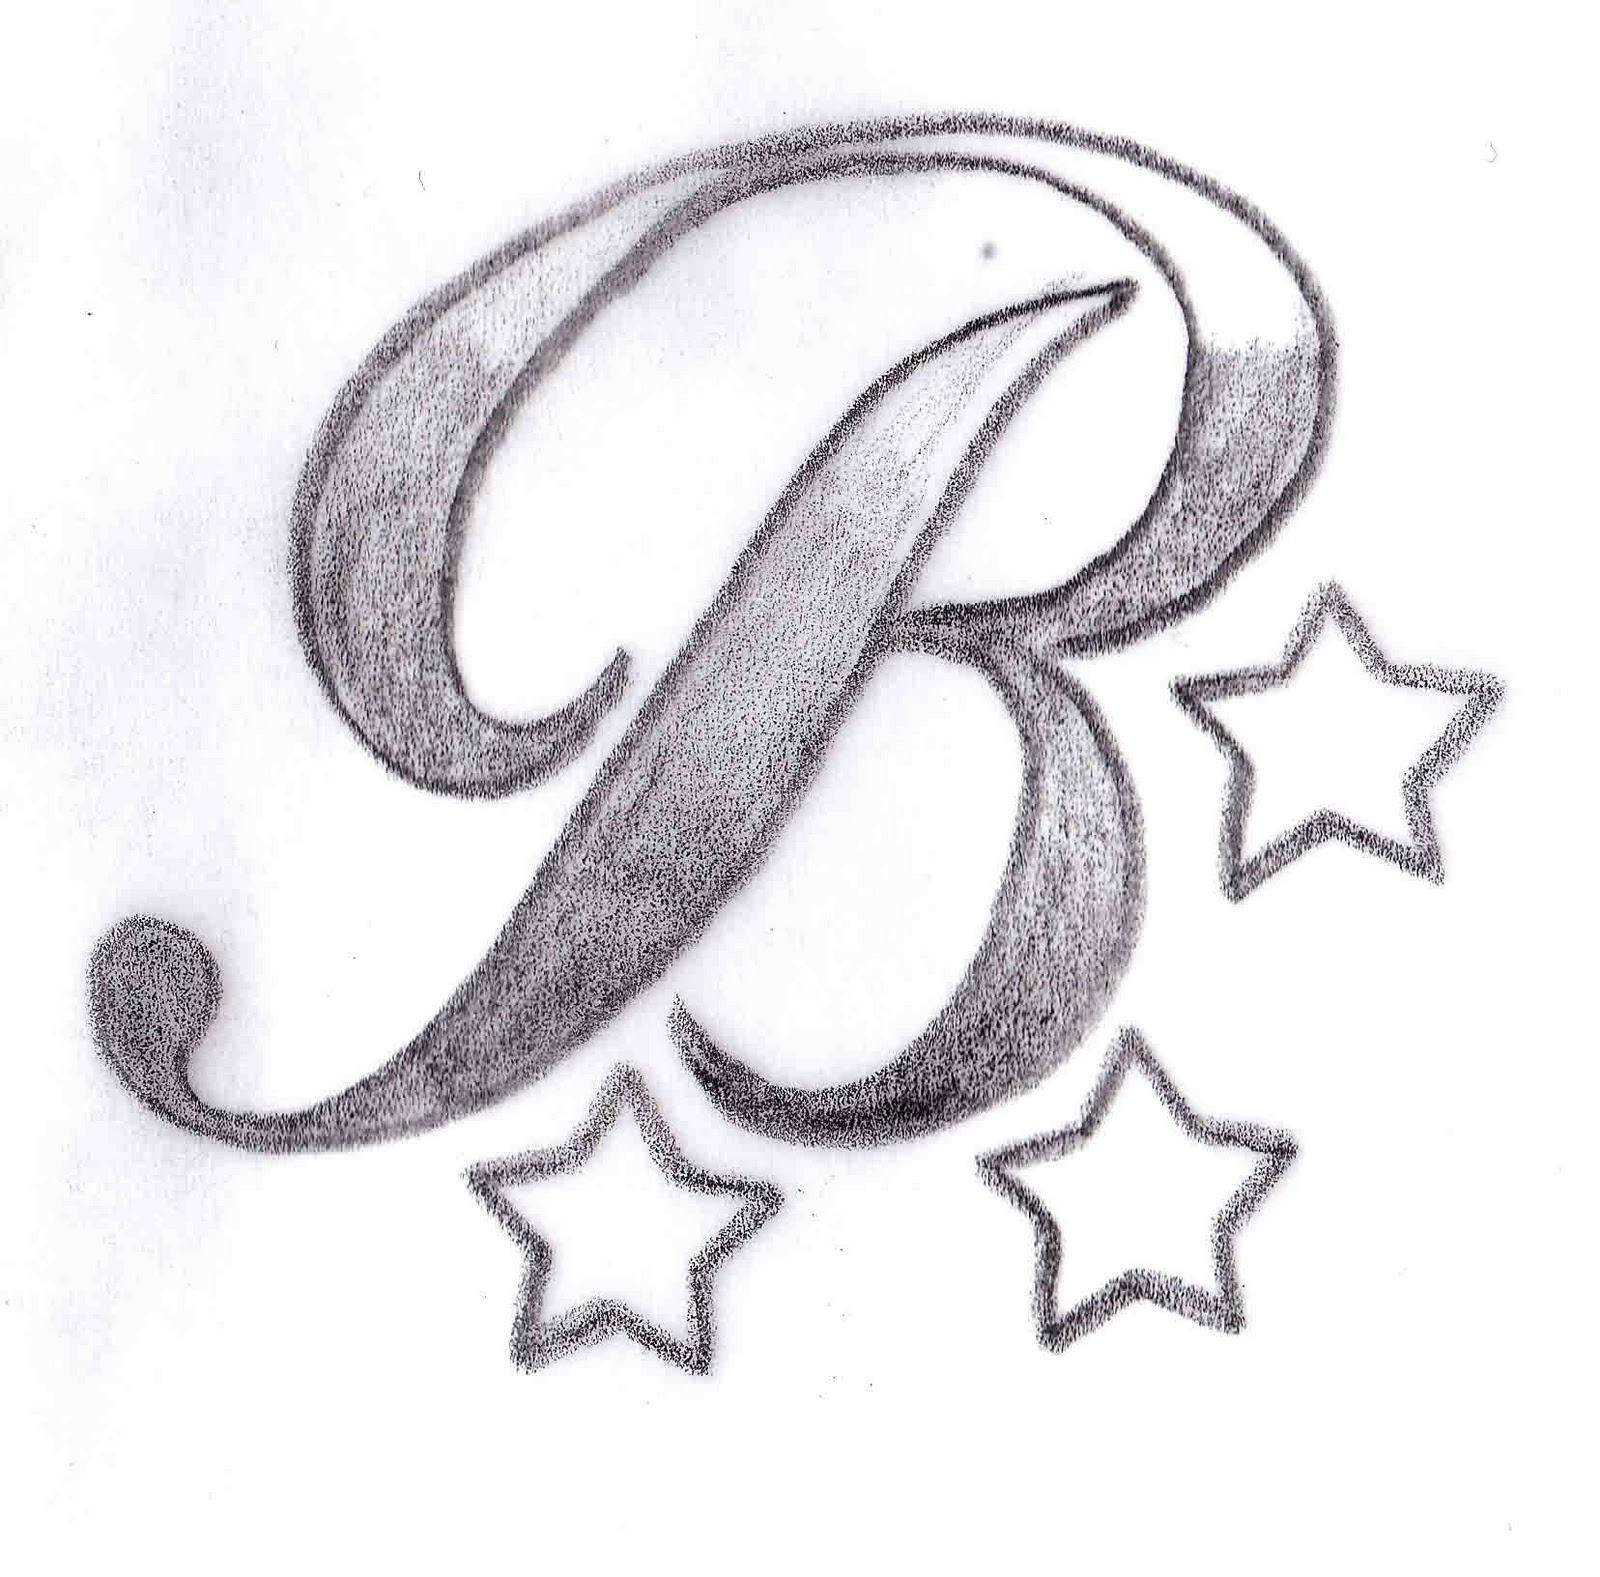 Tattoo Designs With Letter A: 1000+ Ideas About Letter B Tattoo On Pinterest